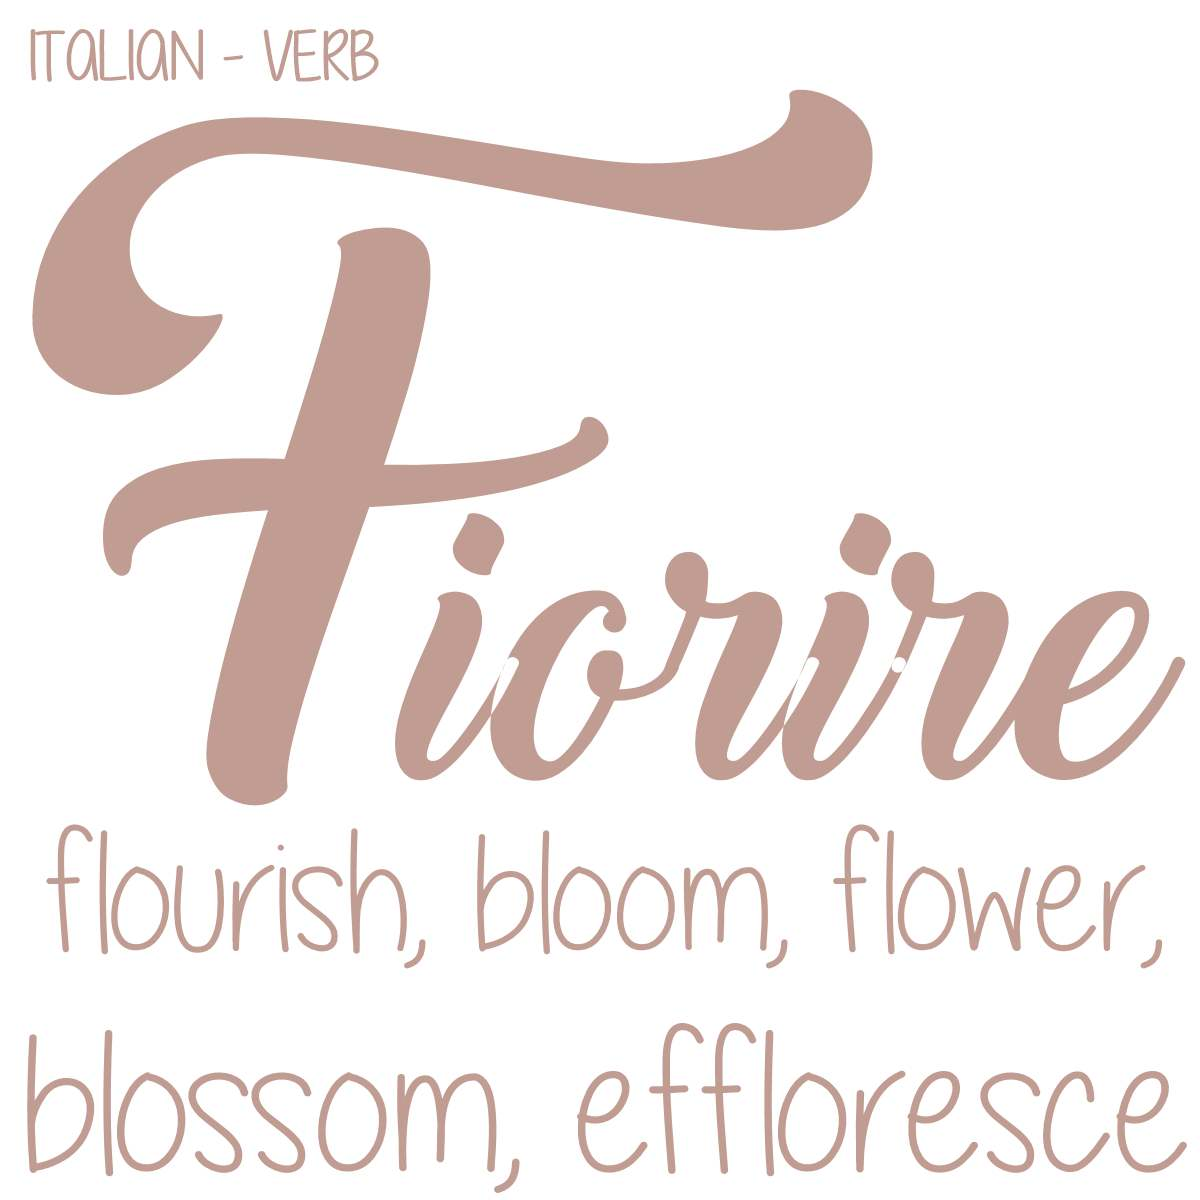 fIORIRE - ITALIAN VERB - FLORUM FASHION SUBMISSION MAGAZINE - ETHICAL NATURAL SUSTAINABLE - ECO TRAVEL - DIGITAL NOMAD - PASSION PASSPORT - GREEN ORGANIC.jpg